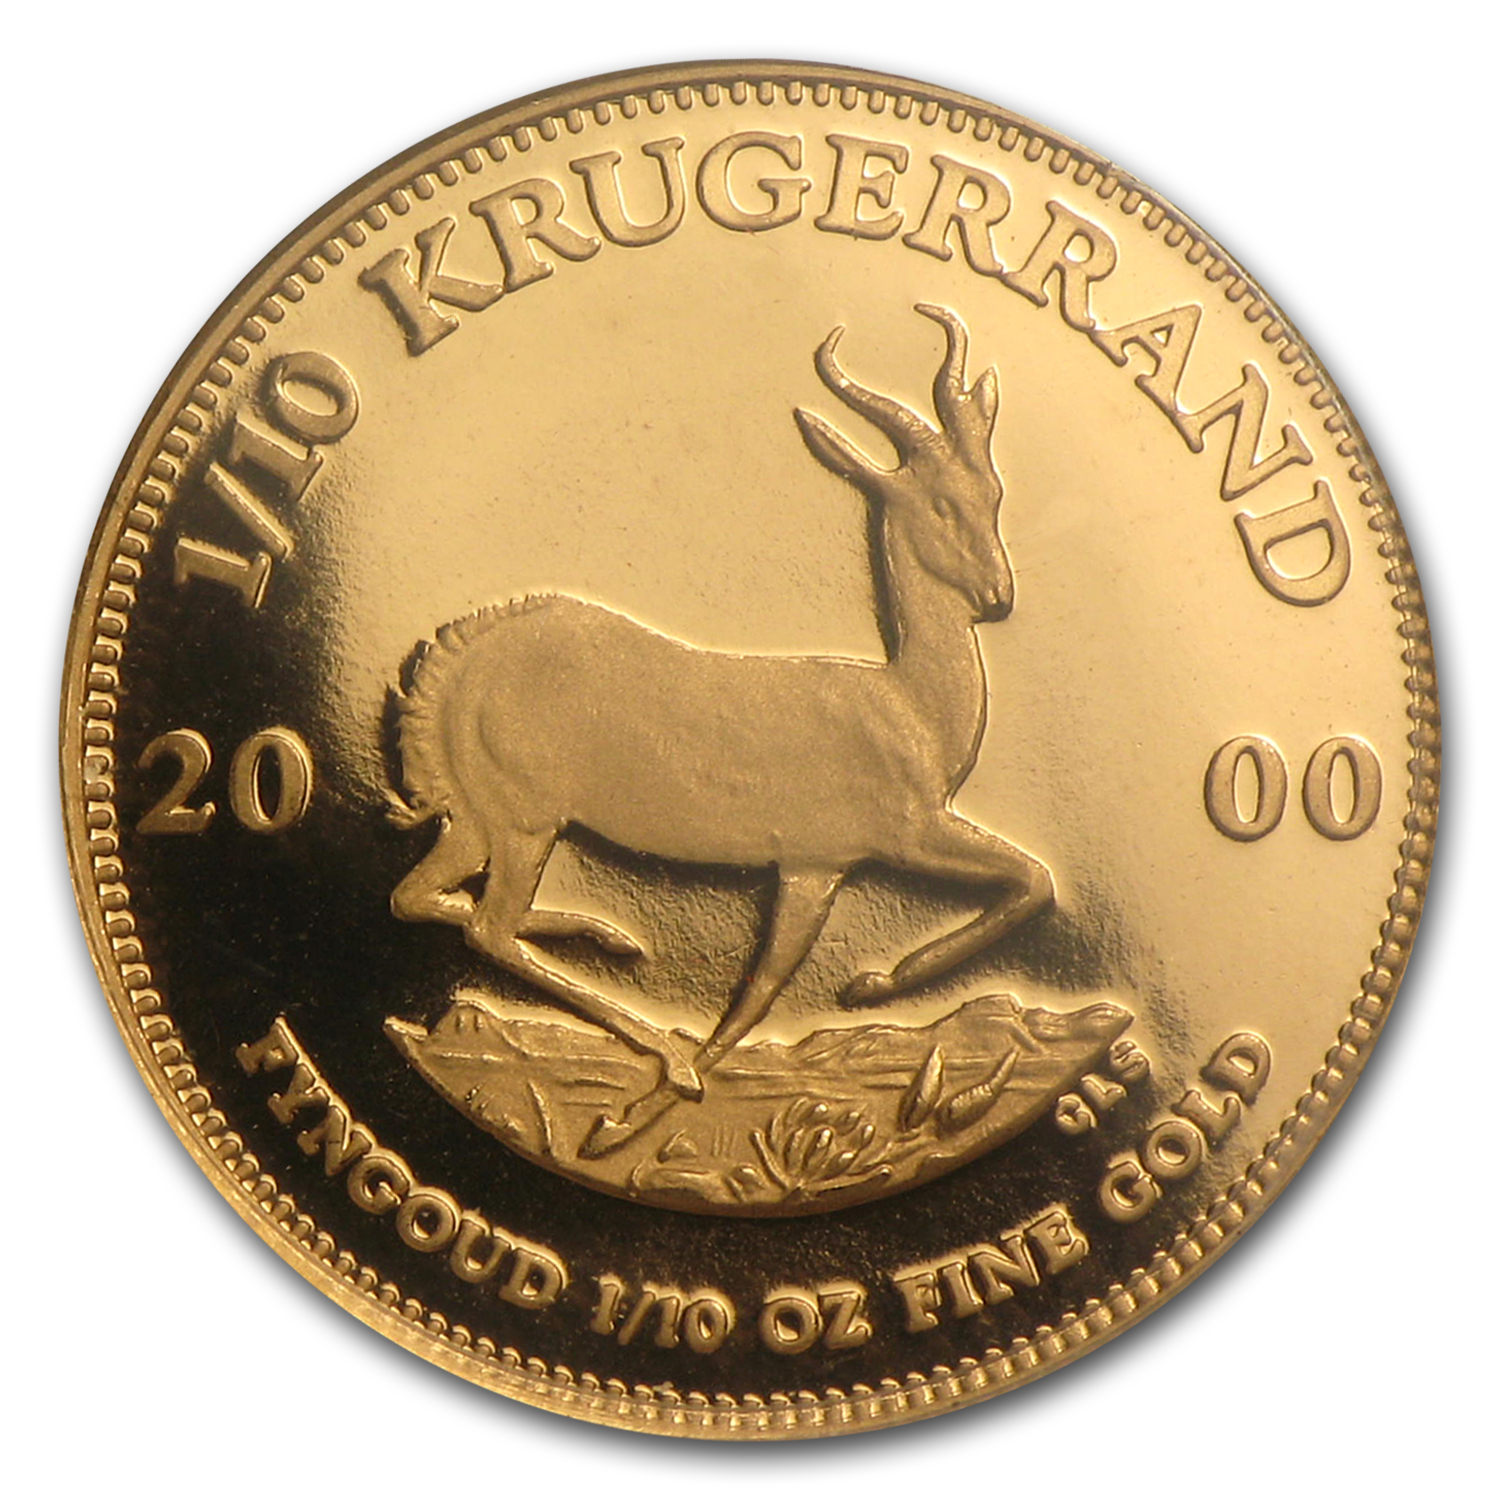 2000 1/10 oz Gold South African Krugerrand (Proof)